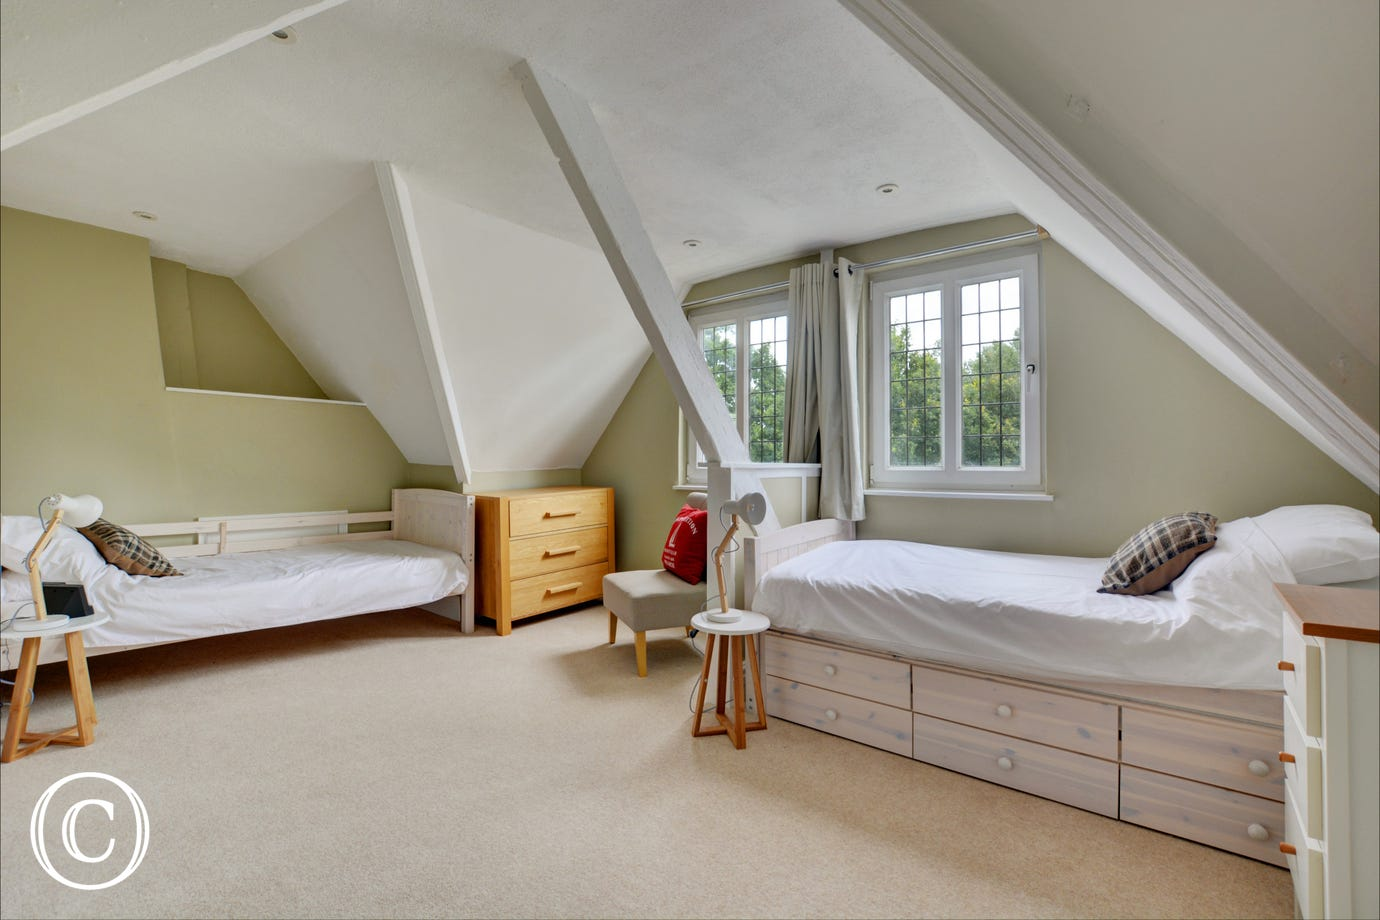 Bedroom 6 with twin beds